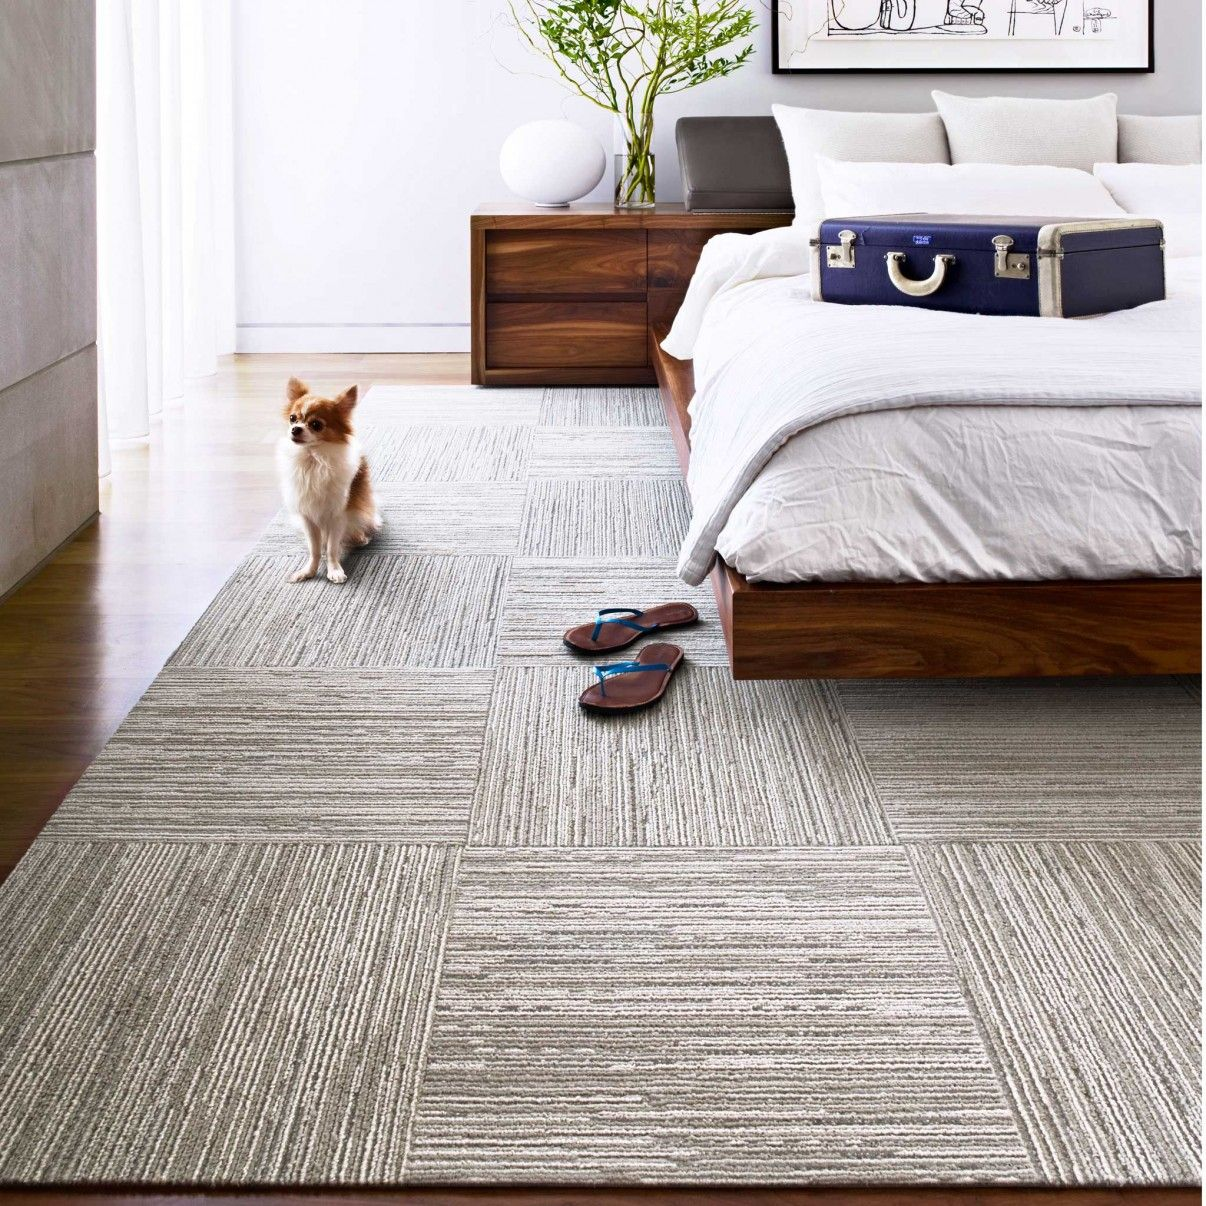 Flor Lacebark Carpet Tiles I Like The Patchwork Detail Yet Soothing Neutrals Especially For